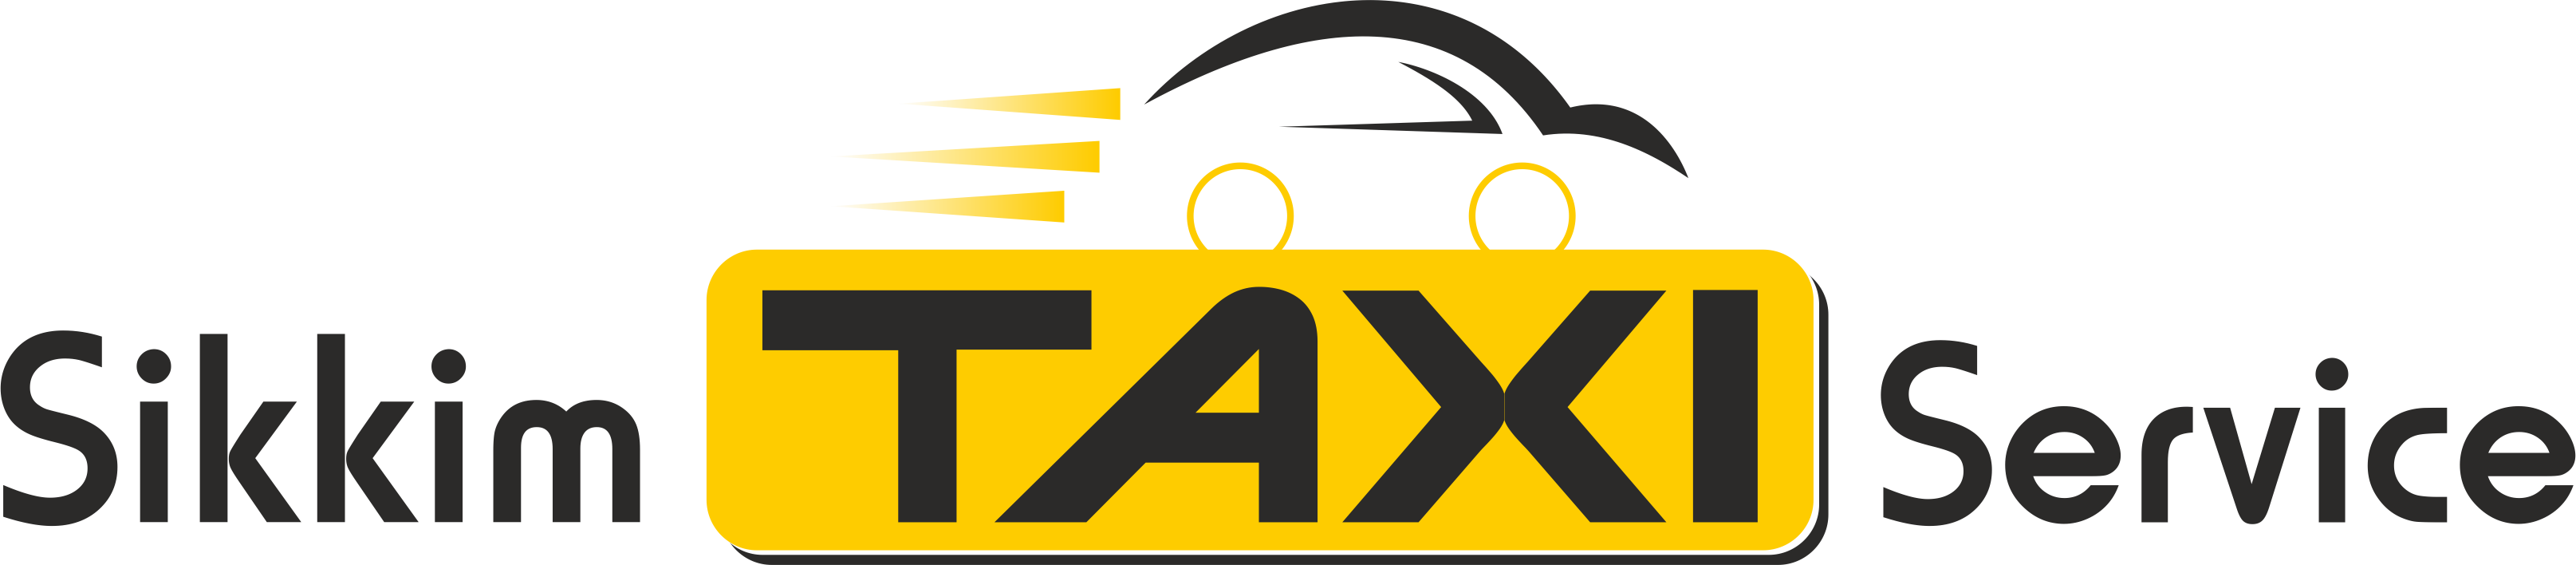 Sikkim Taxi Service